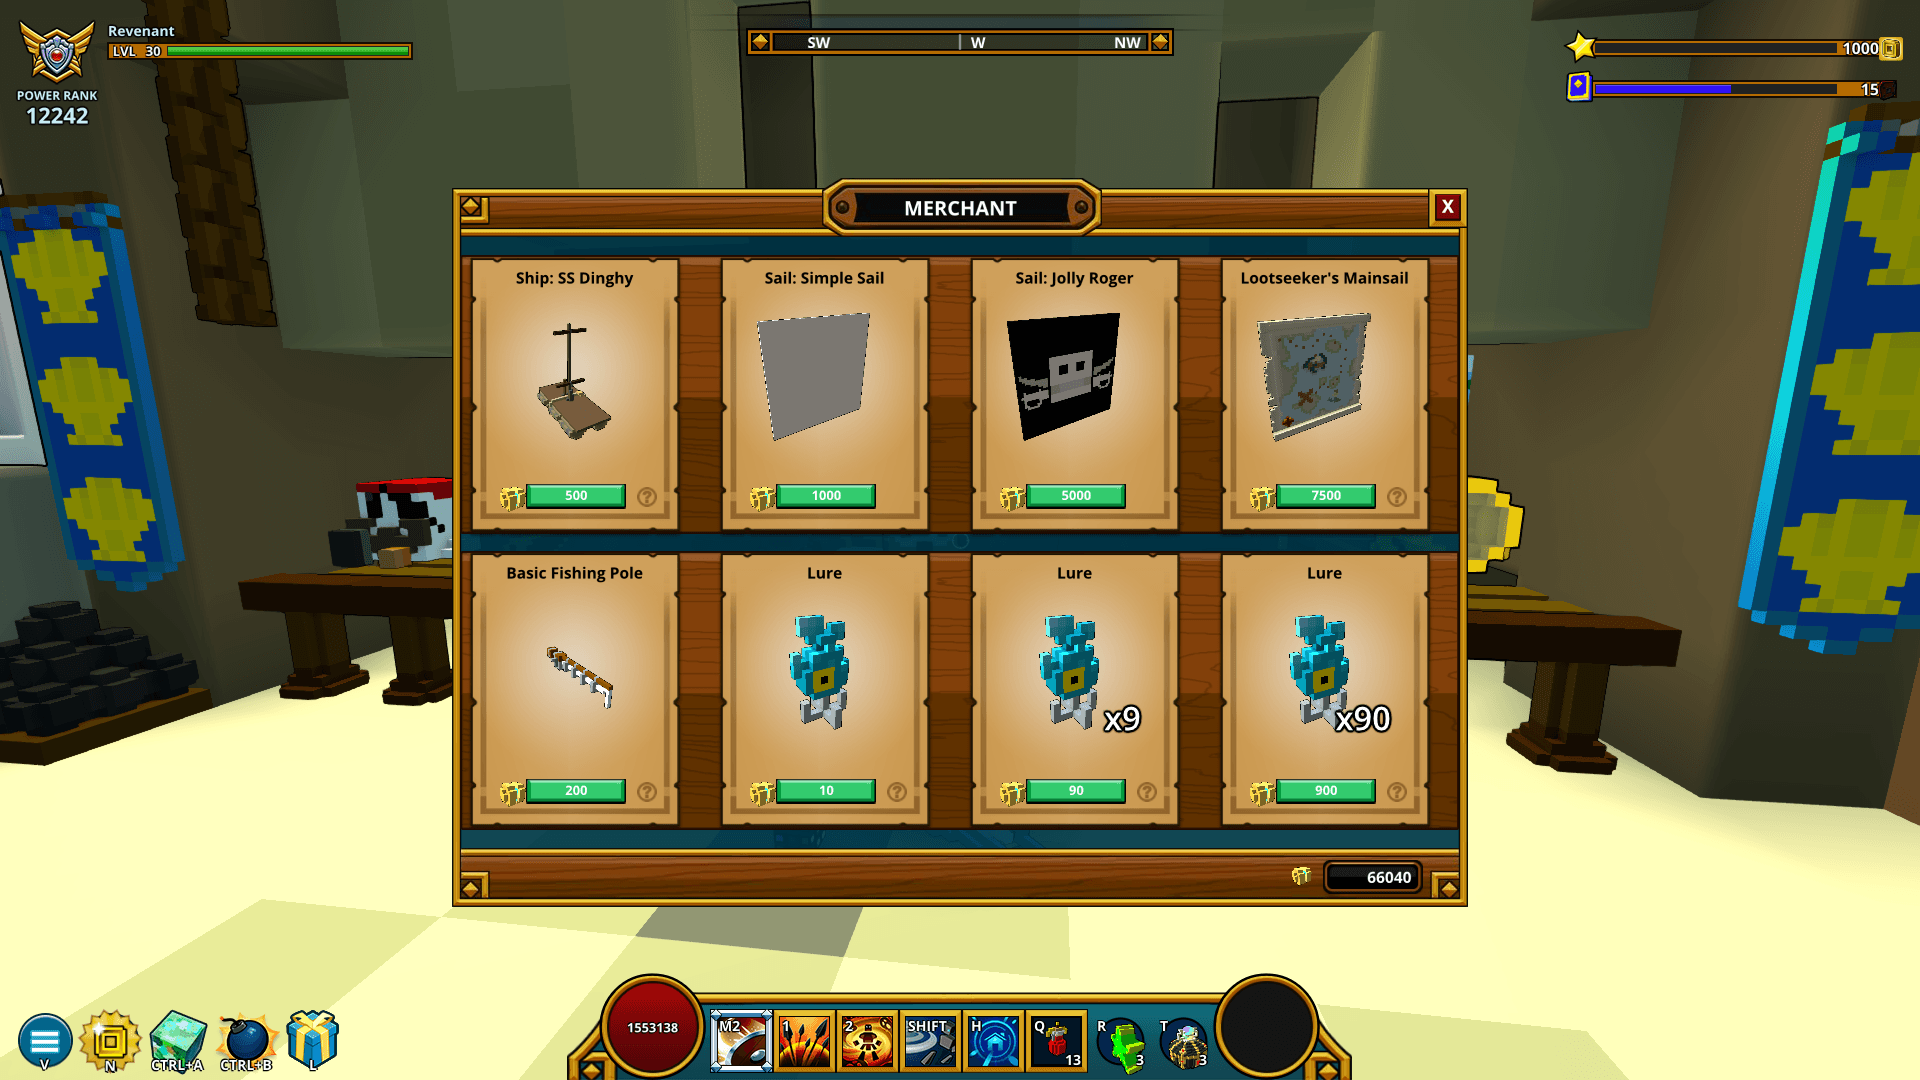 Purchase fishing poles and lures in Trove